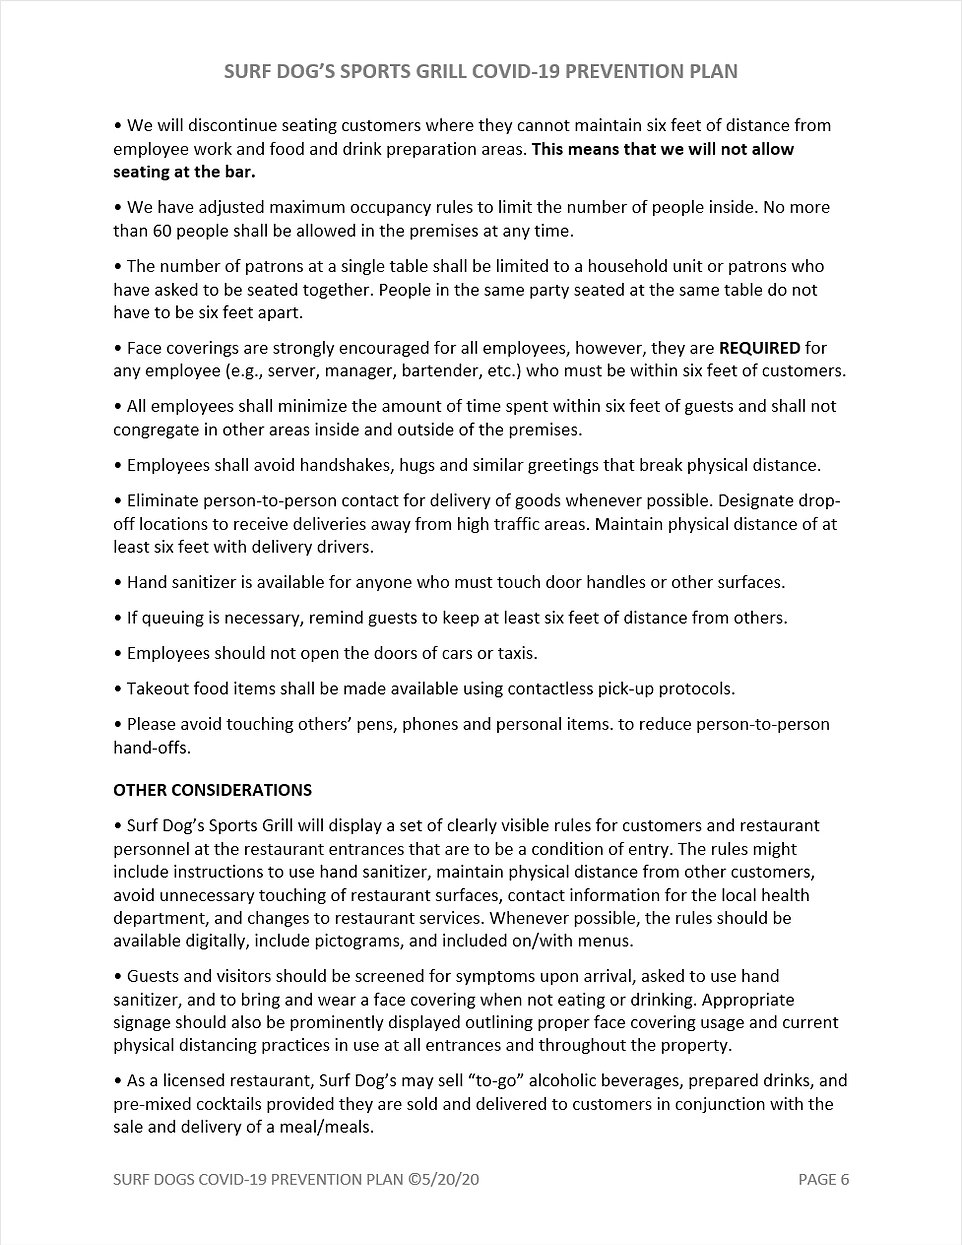 SDSG COVID-19 PREVENTION PLAN PAGE 6.jpg